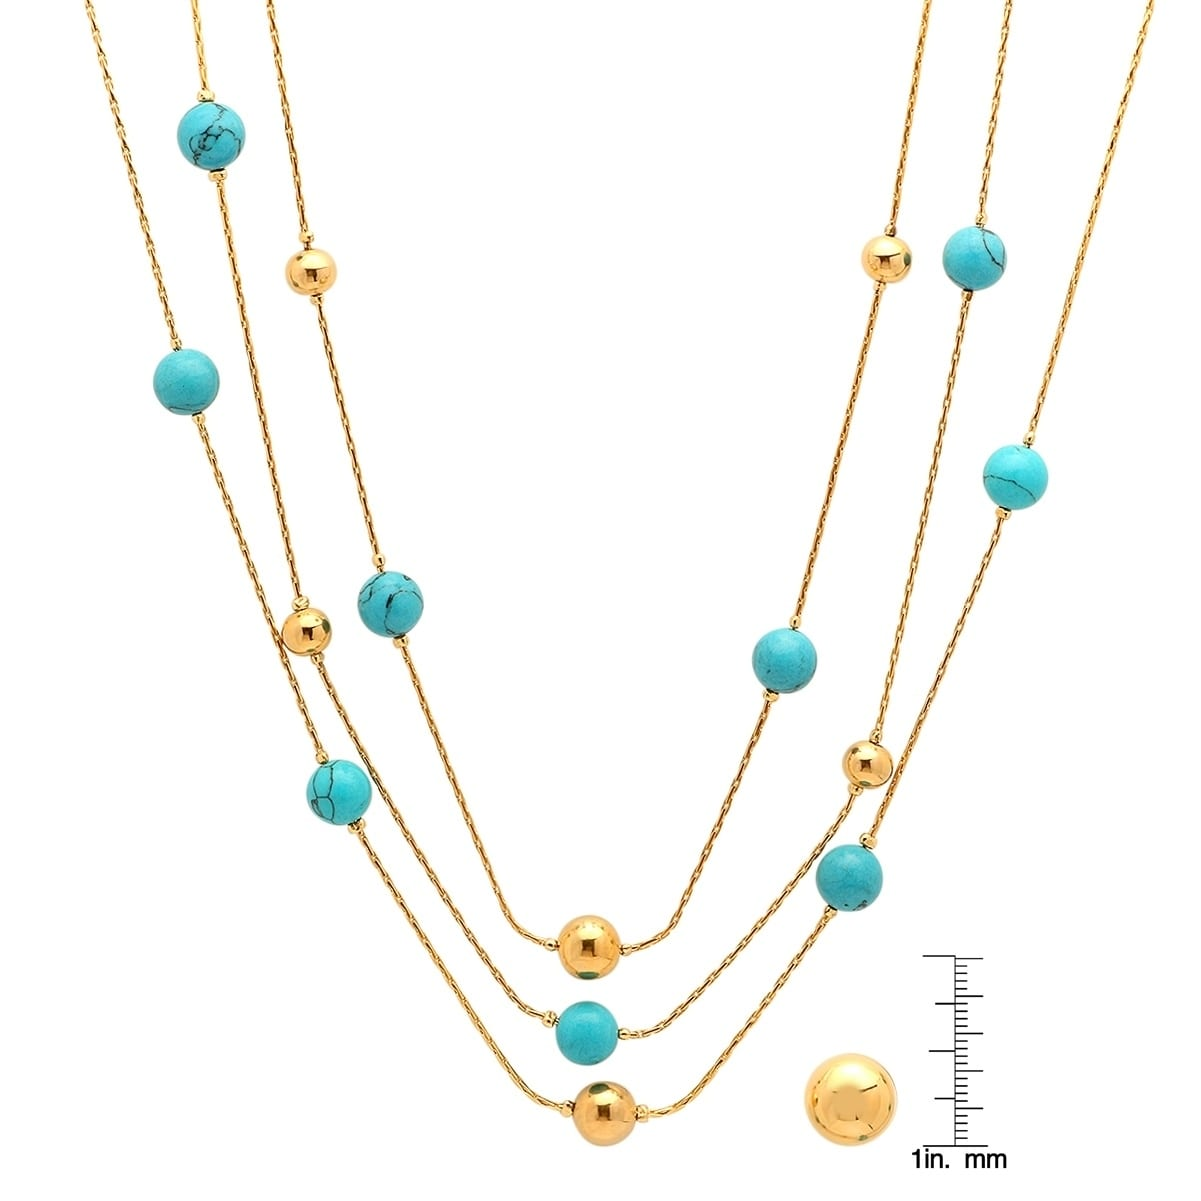 96b7b5e0b6eb Piatella Ladies Gold Tone Simulated Turquoise Layered Necklace and Ball  Stud Earrings Set